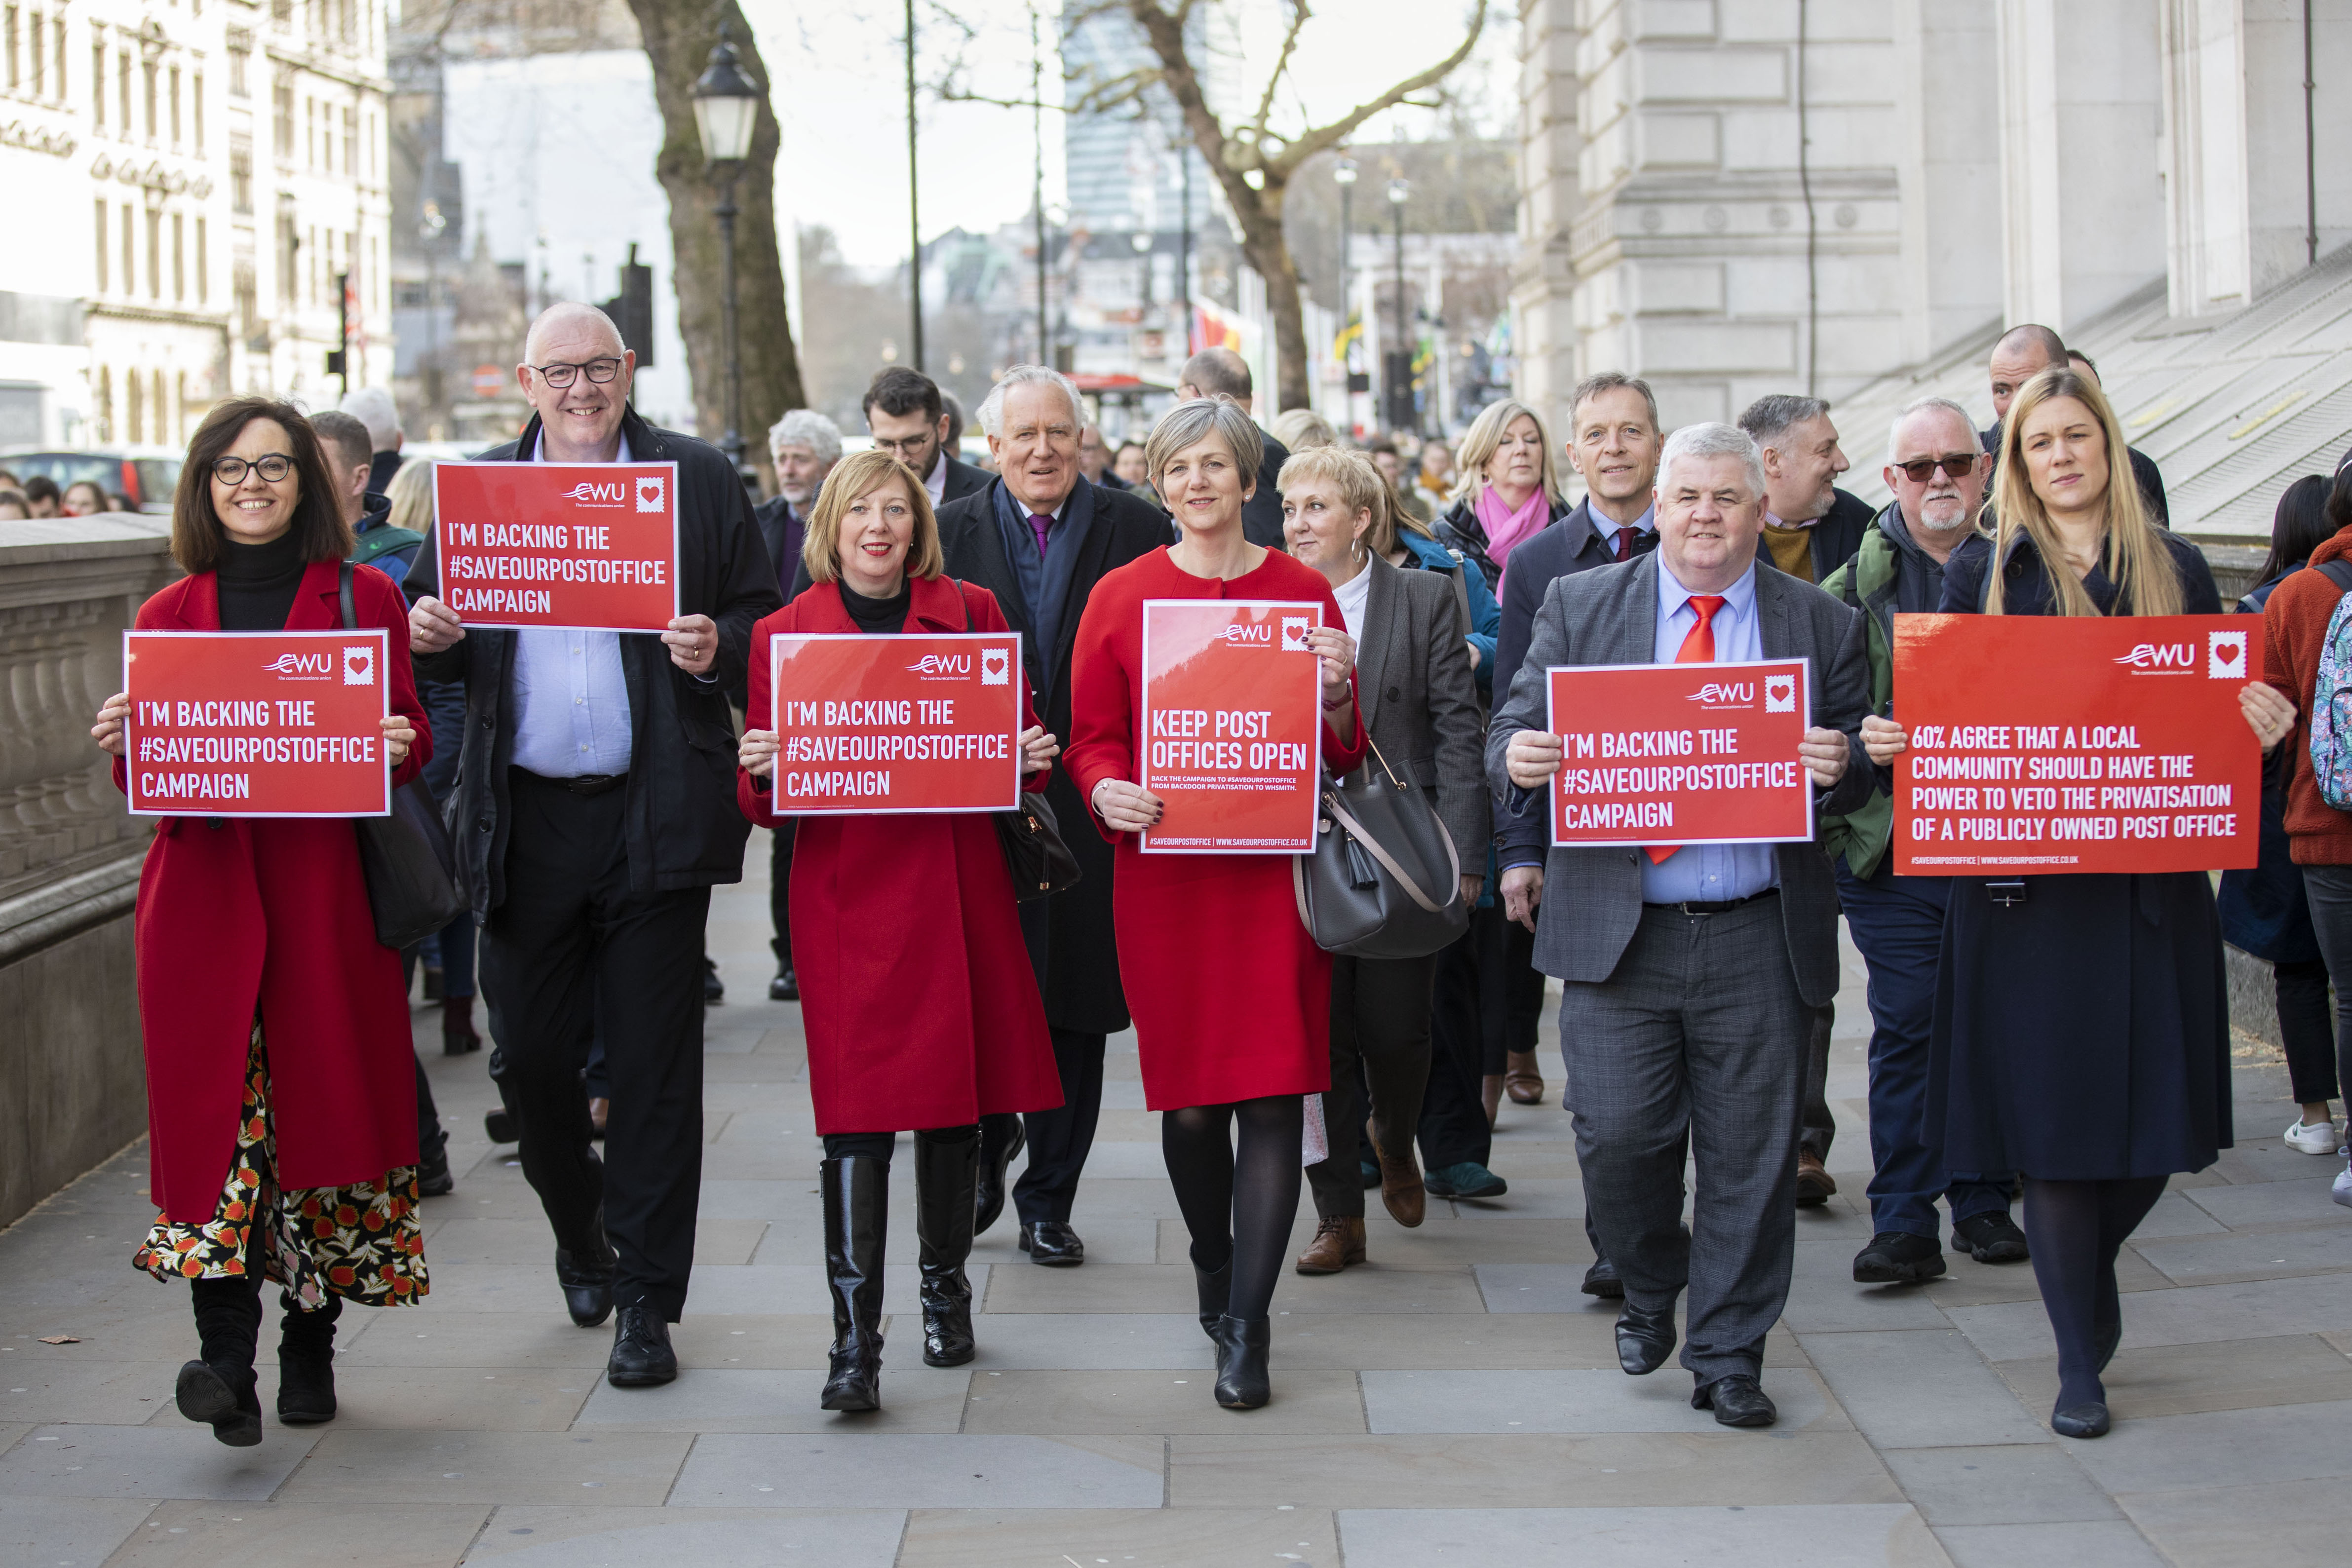 Group_on_way_to_Downing_St.jpg